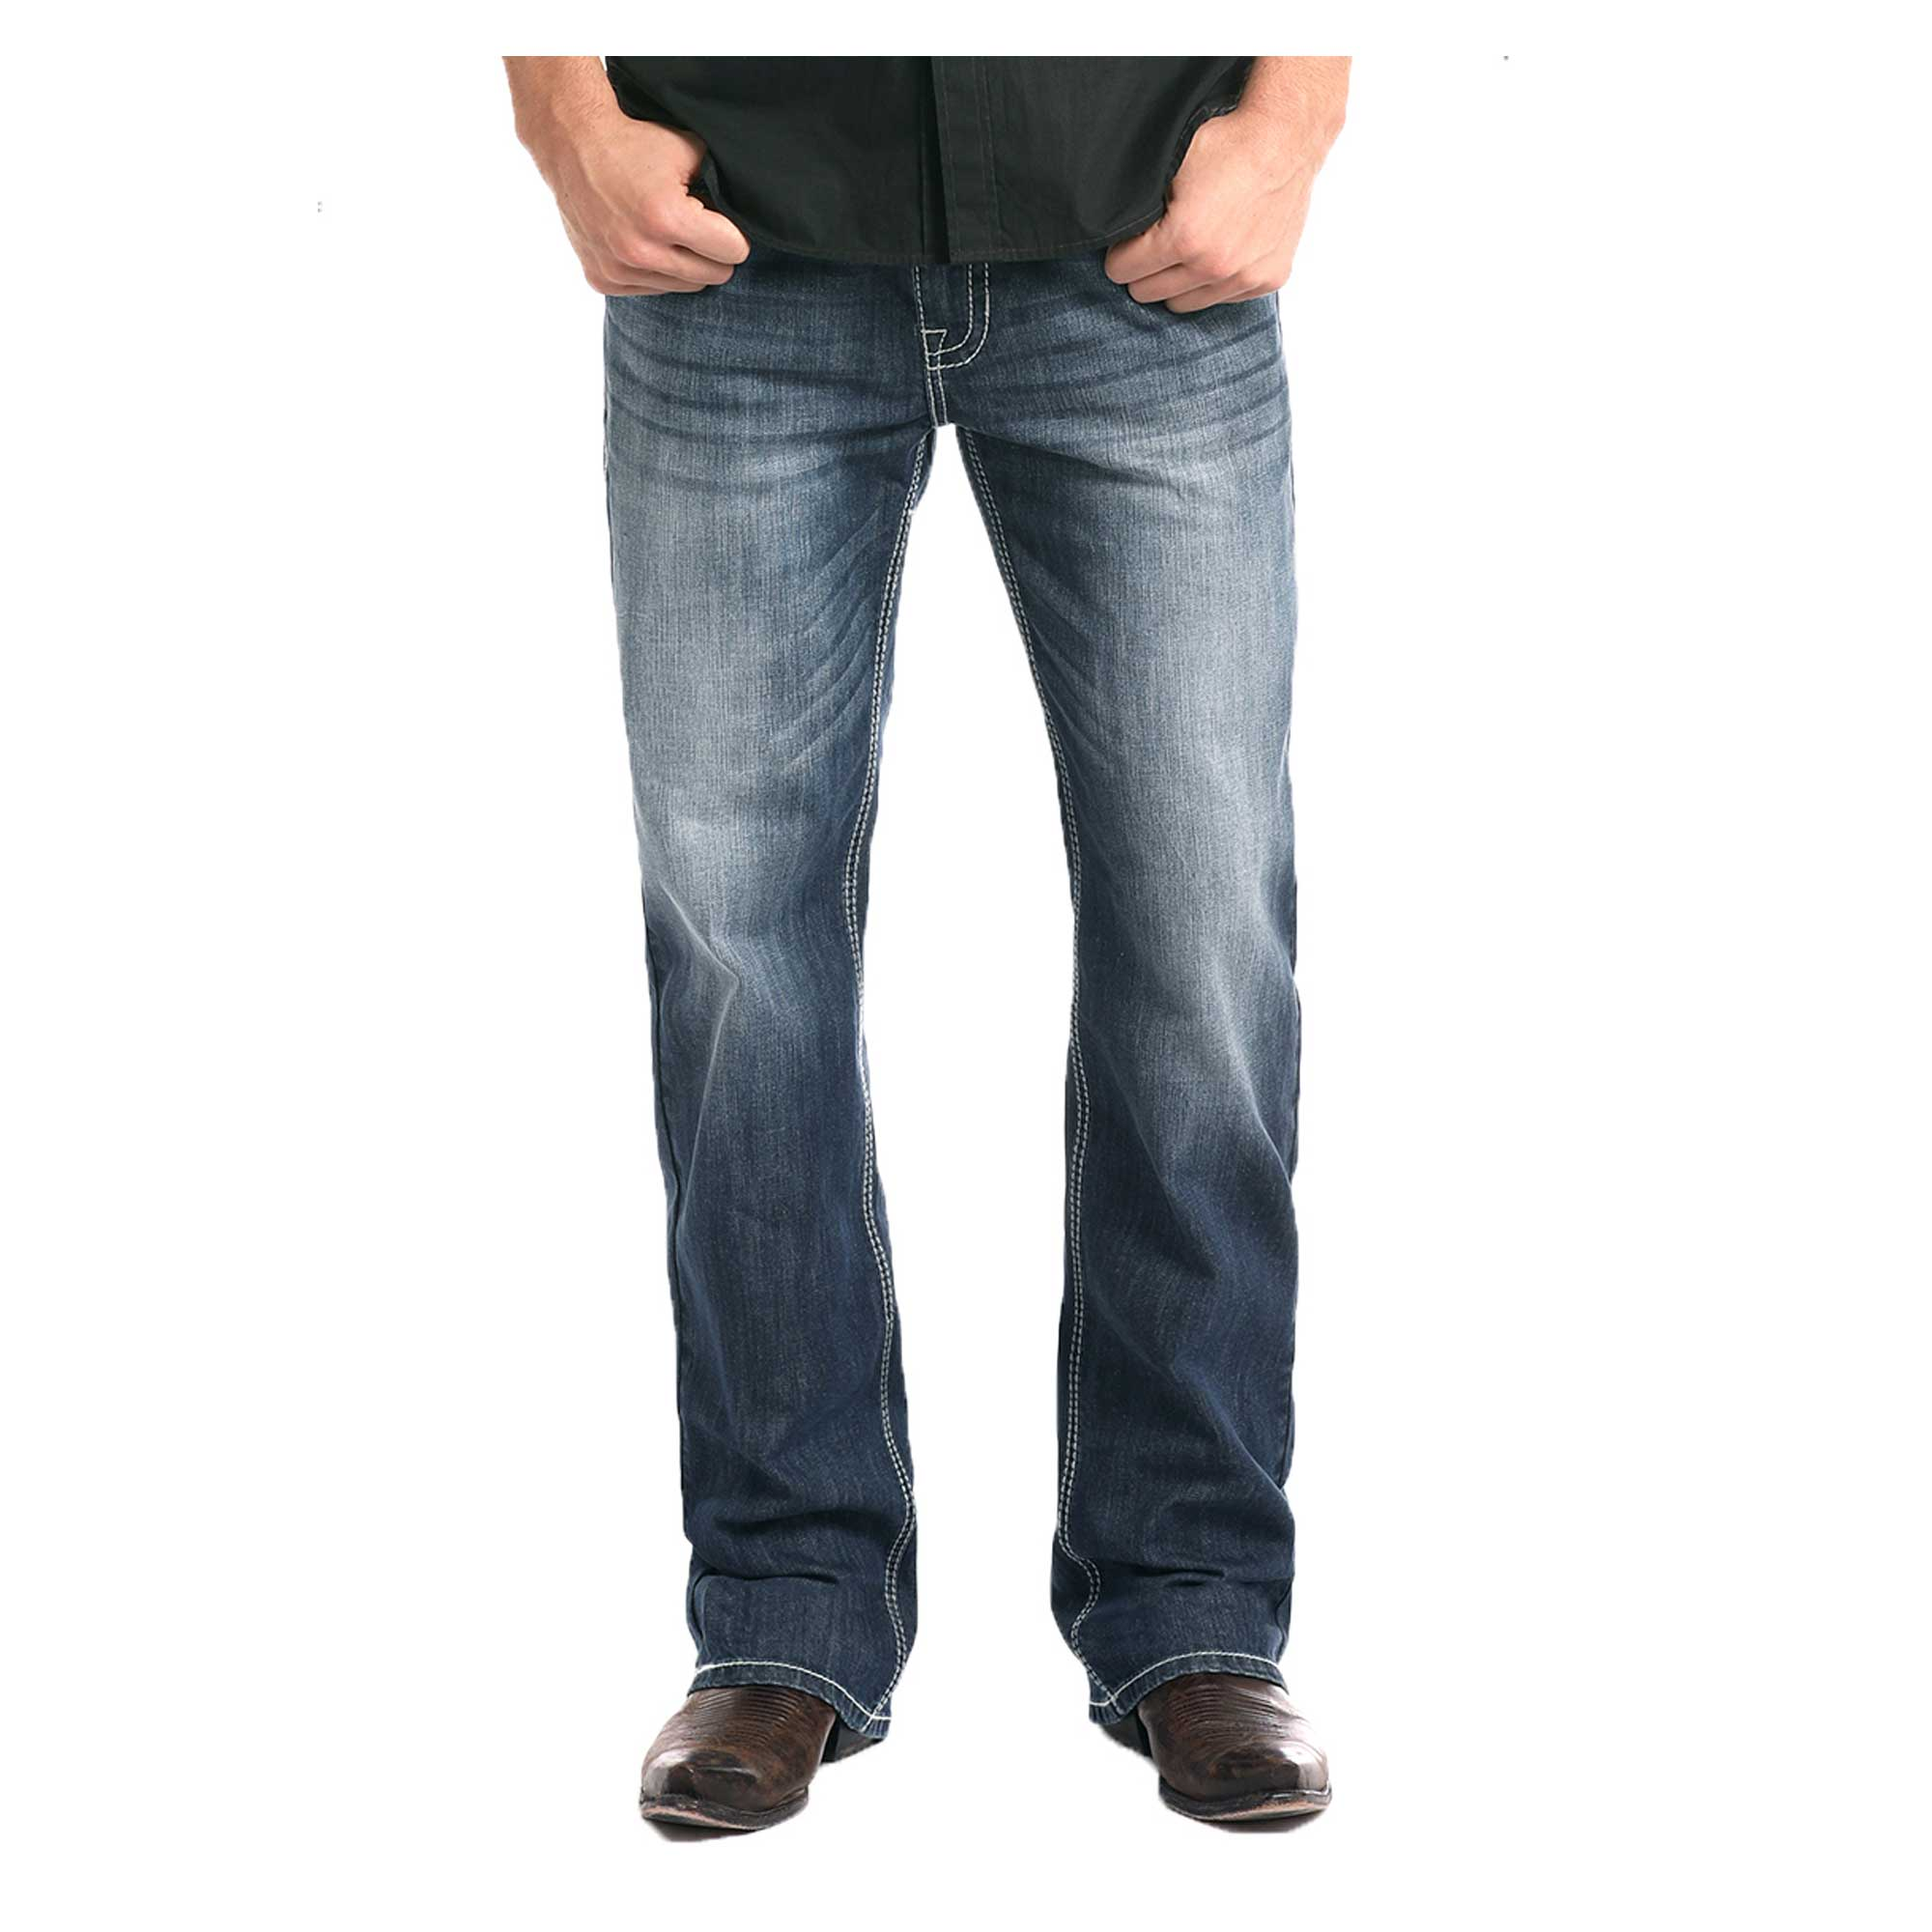 Panhandle Men's Relaxed Fit ReFlex Straight Leg Double Barrel Jeans